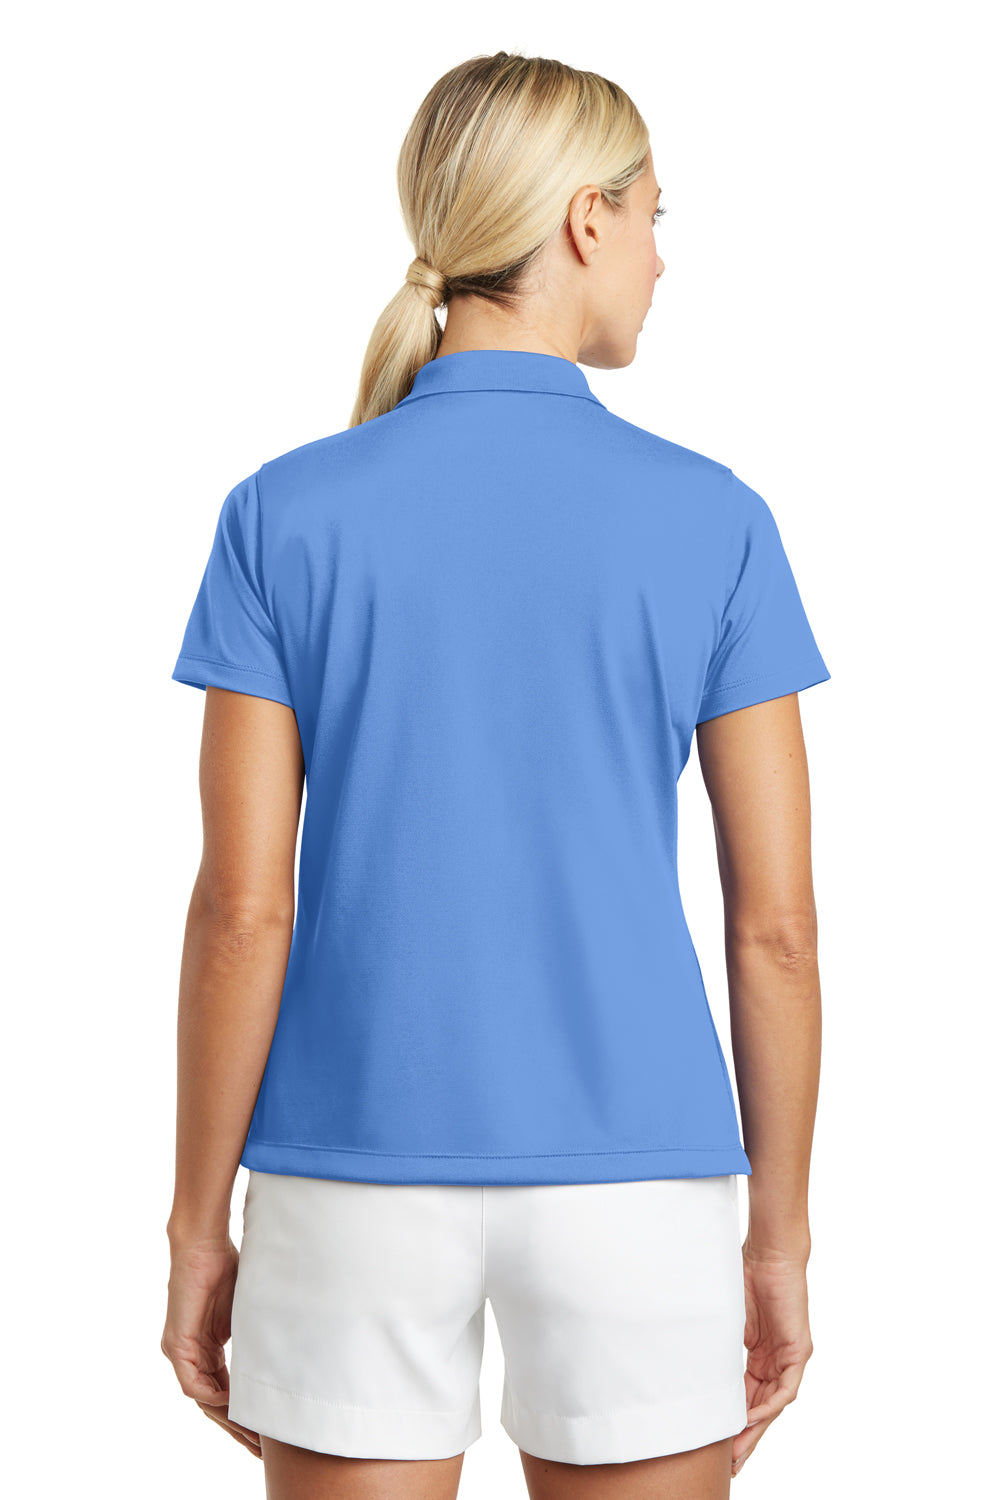 Nike 203697 Womens Tech Basic Dri-Fit Moisture Wicking Short Sleeve Polo Shirt University Blue Back